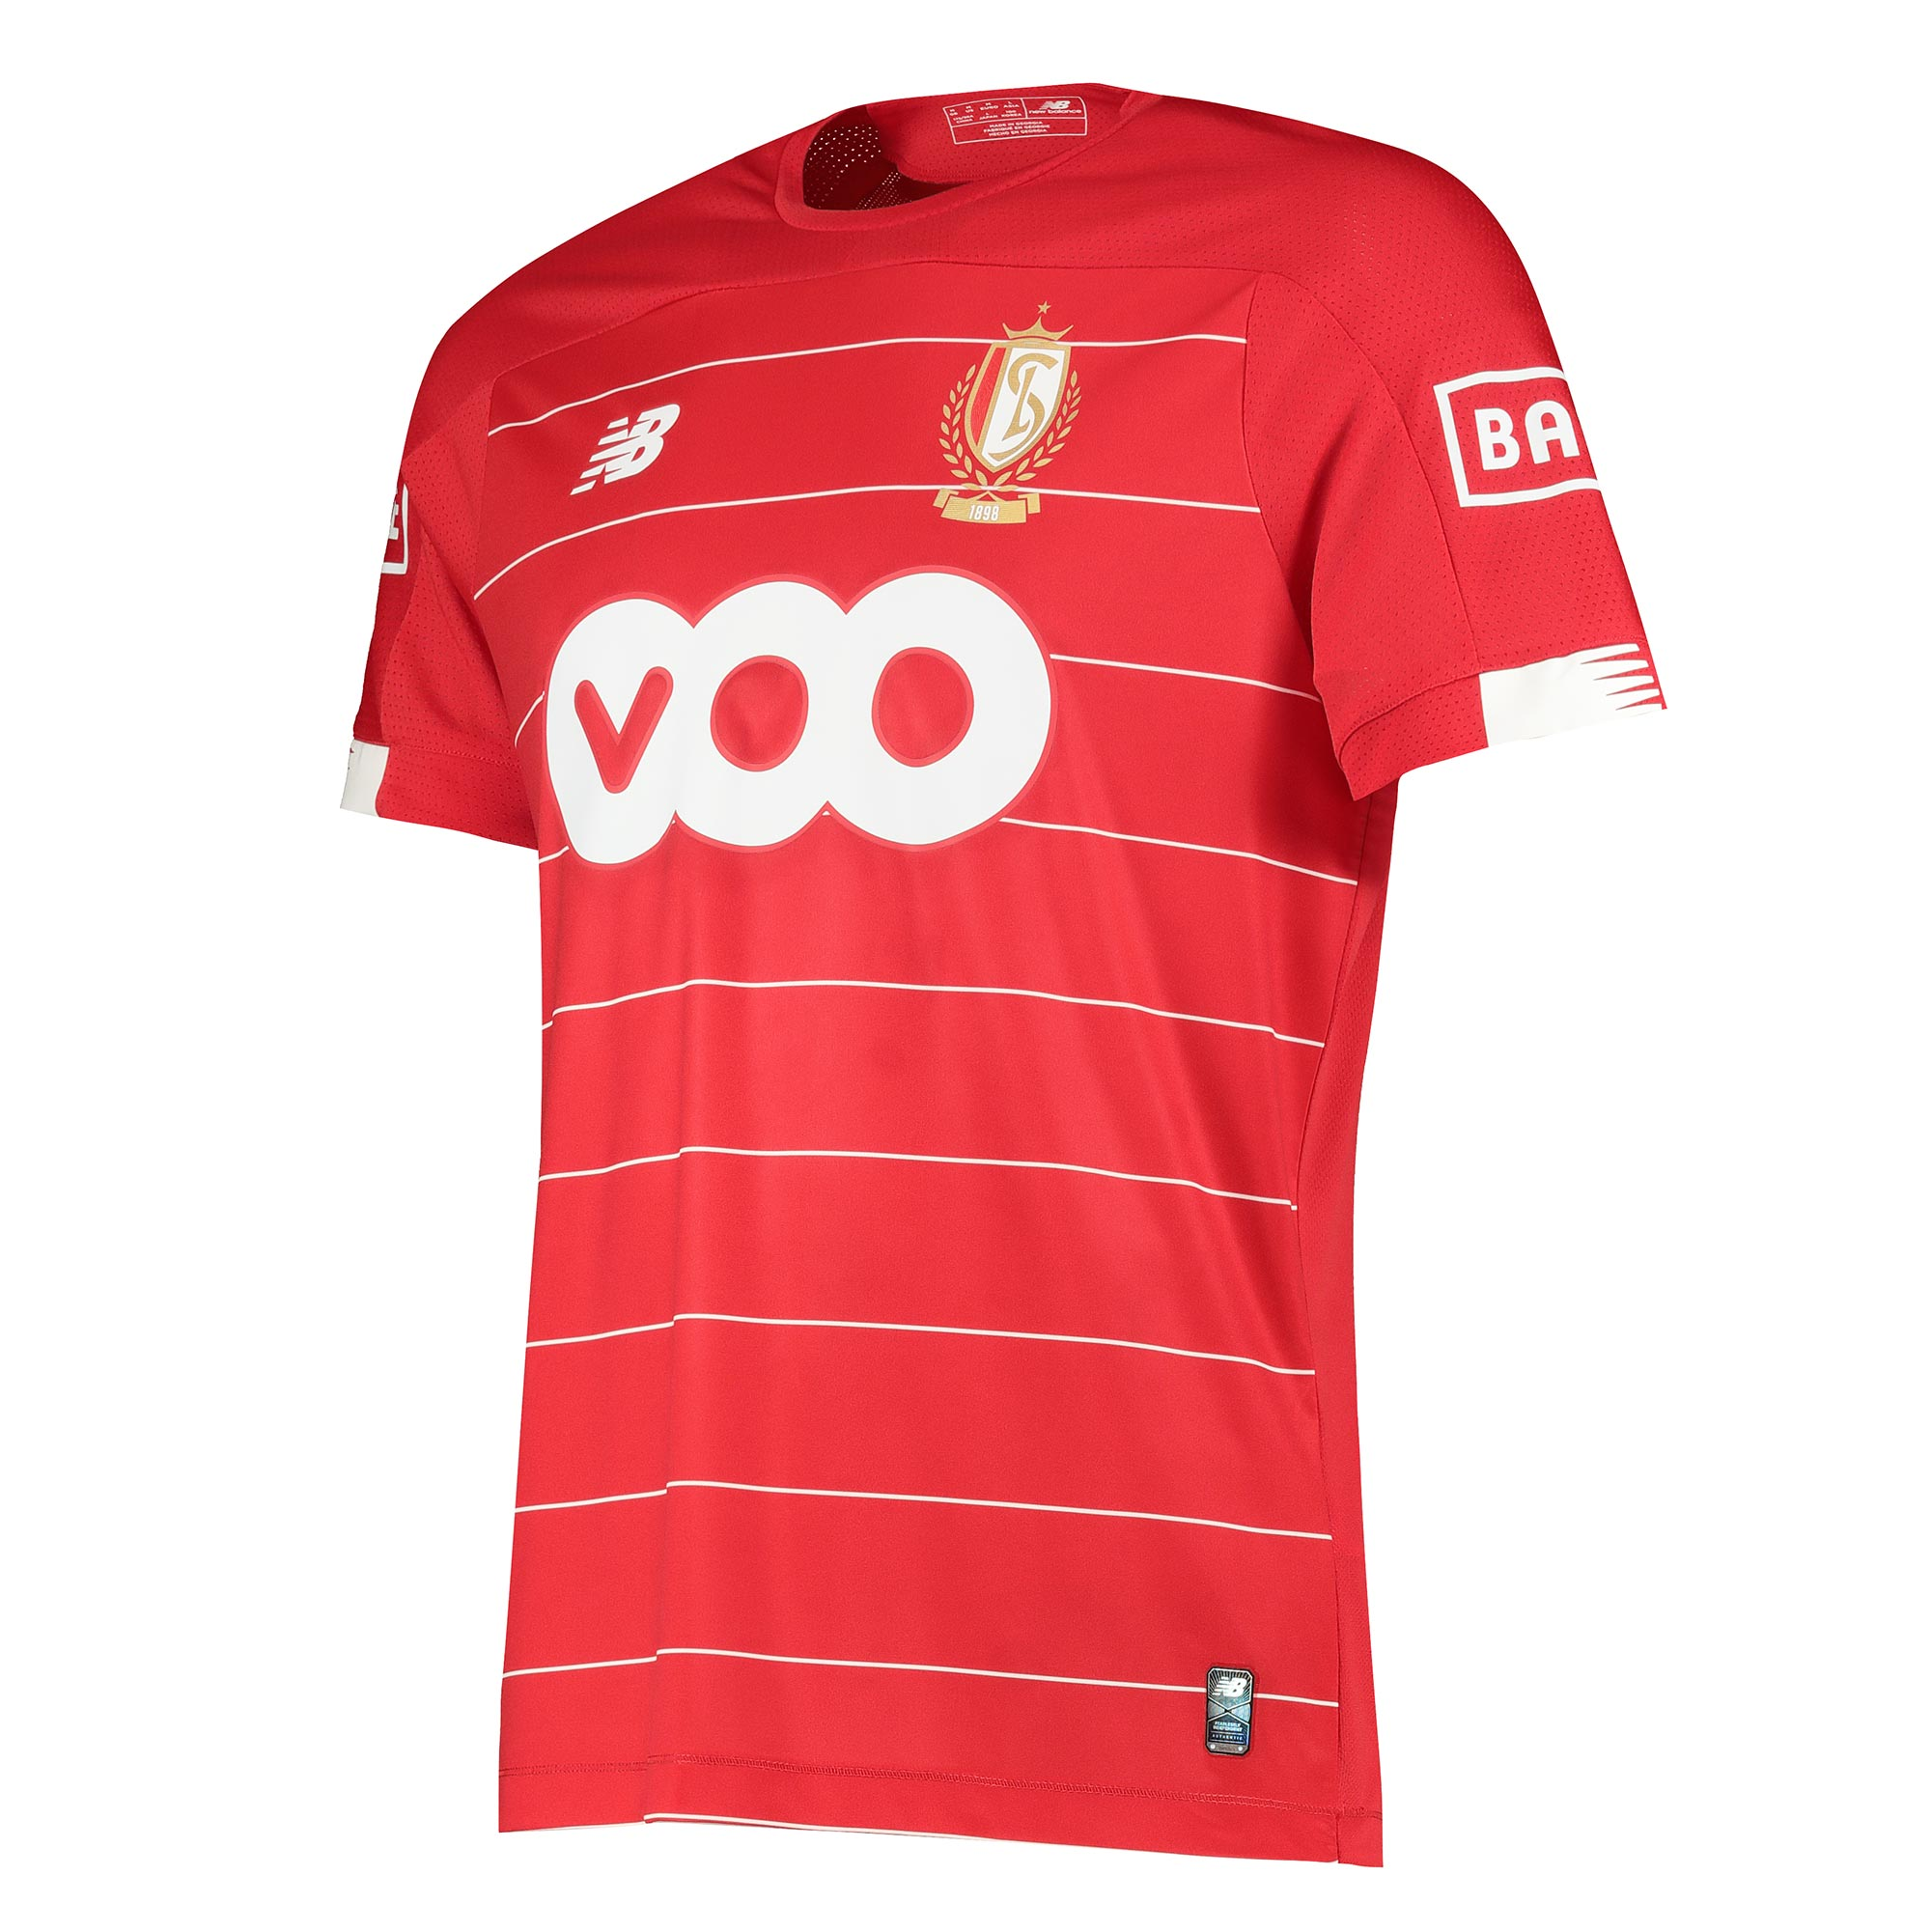 Standard Liege Home shirt